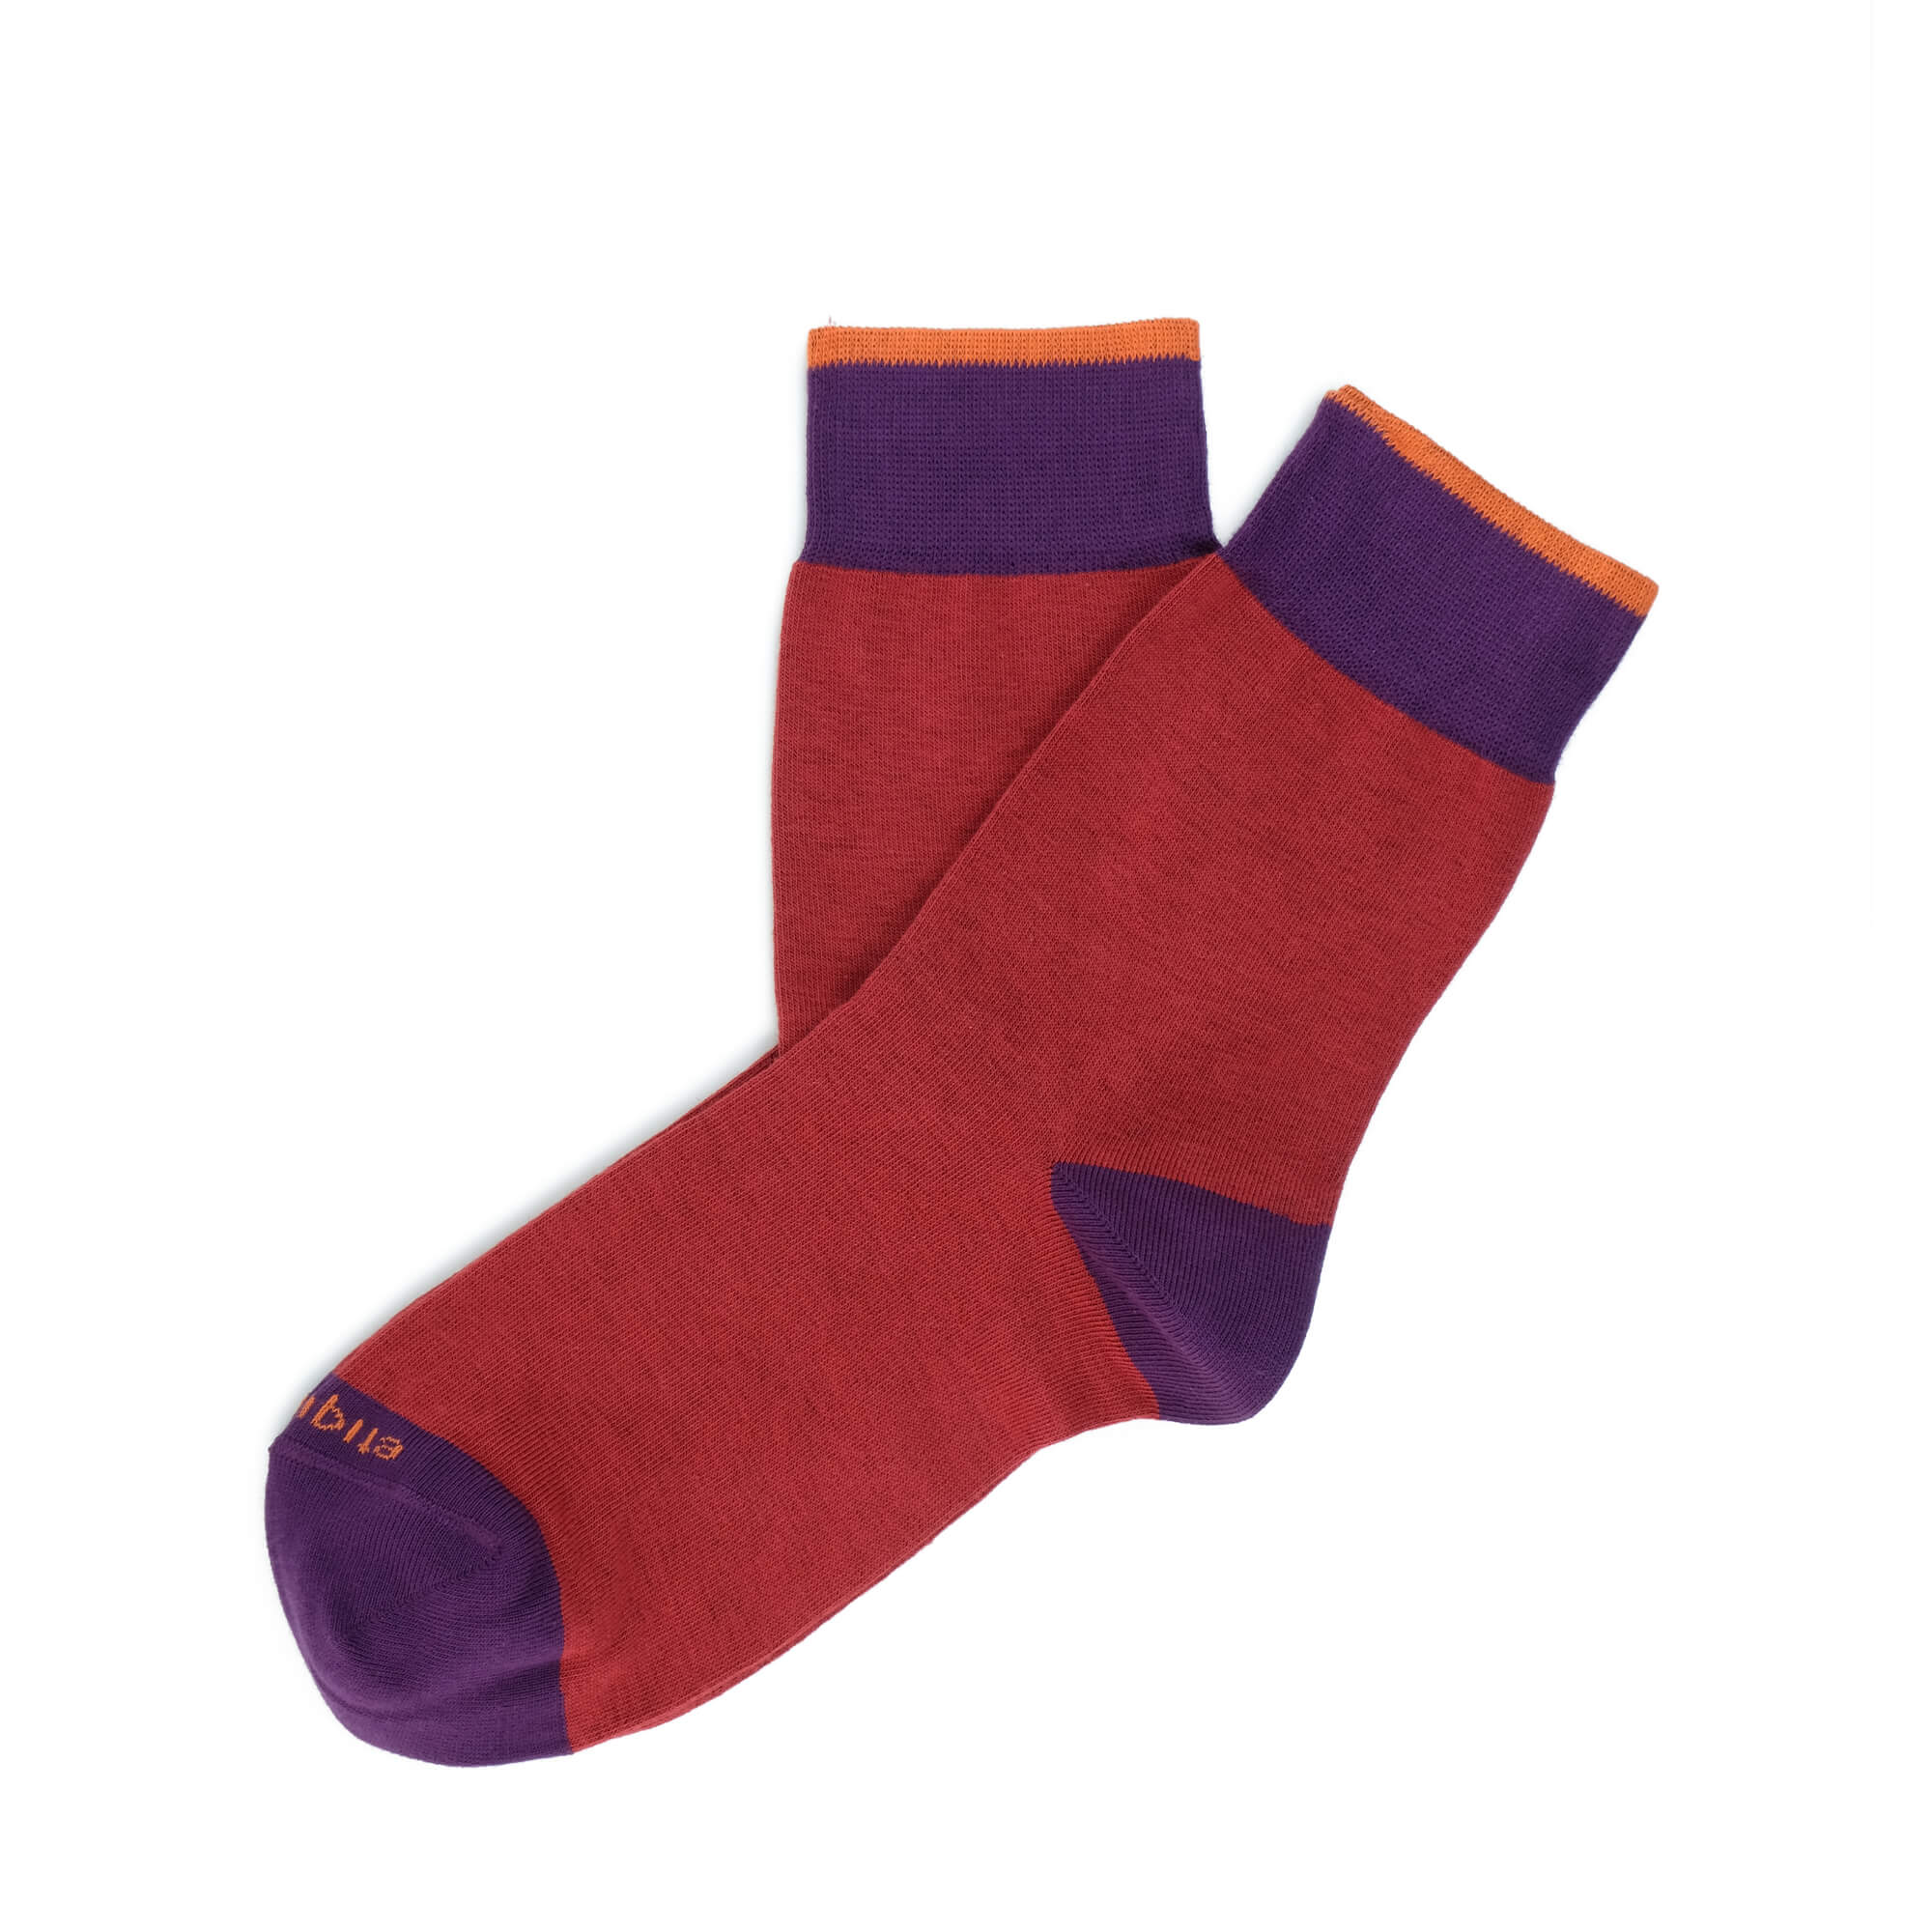 Womens Socks - Tri Pop Women's Socks - Red⎪Etiquette Clothiers